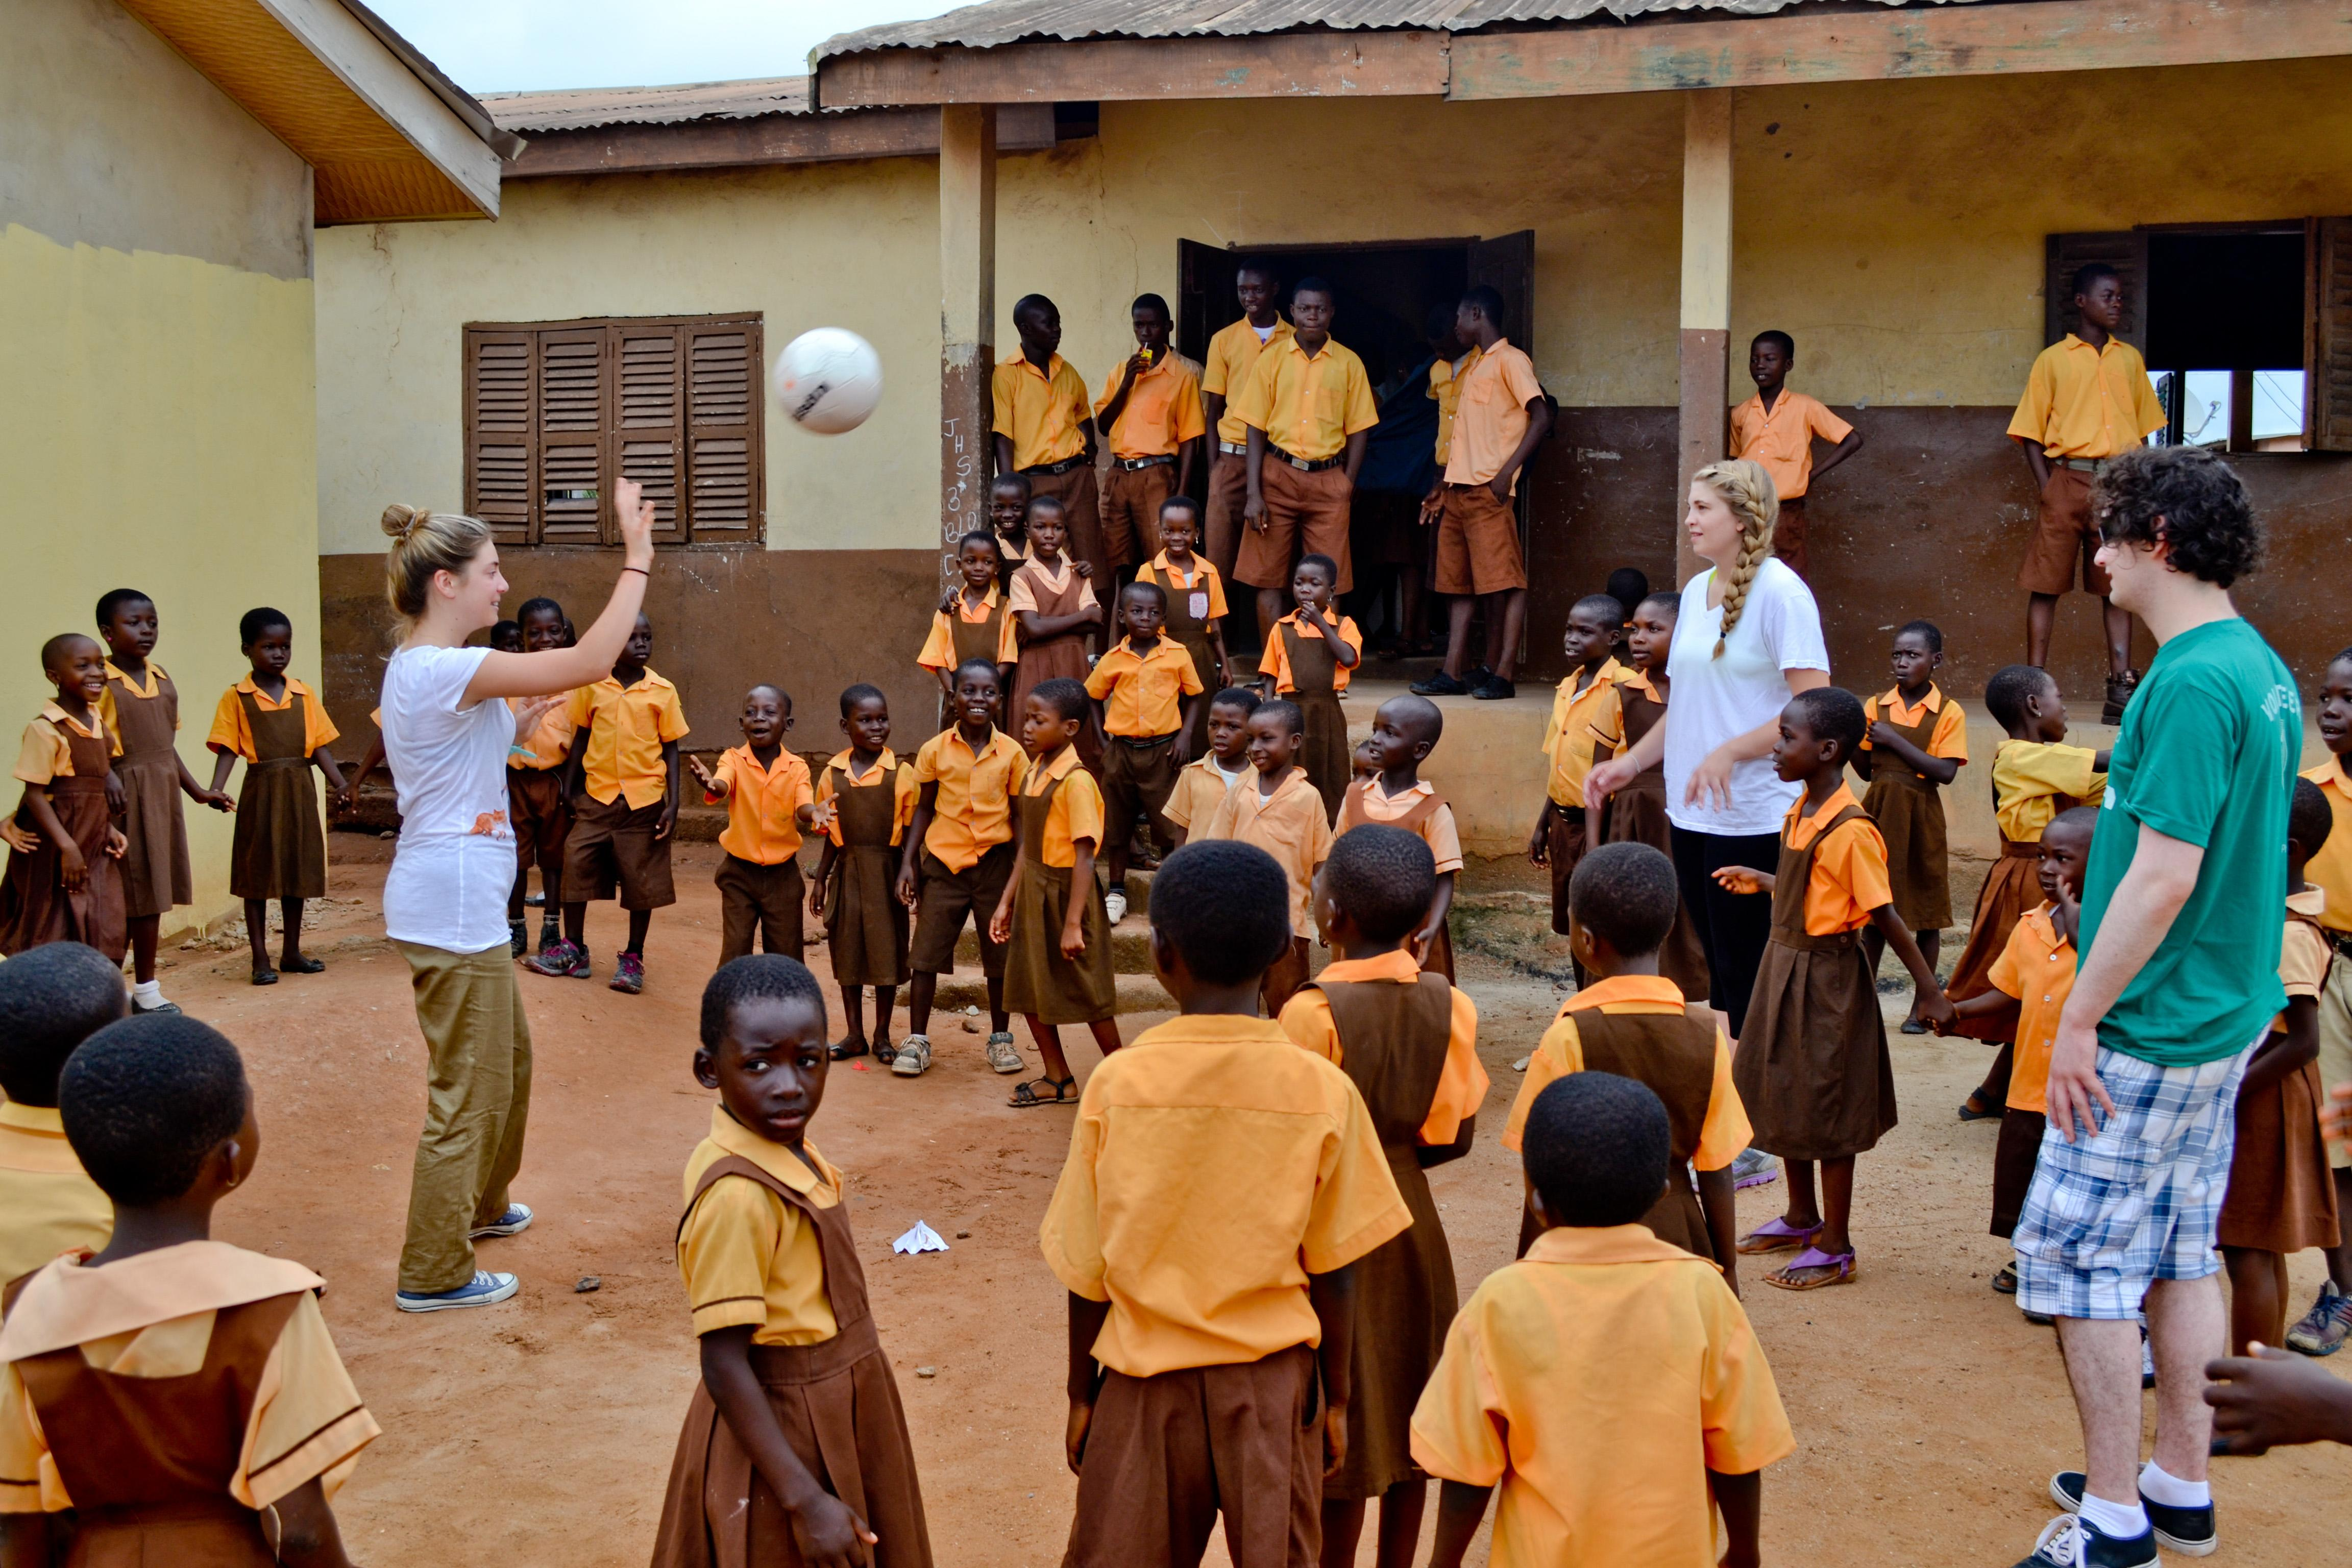 Teaching volunteers in Ghana play football in the school courtyard with their students